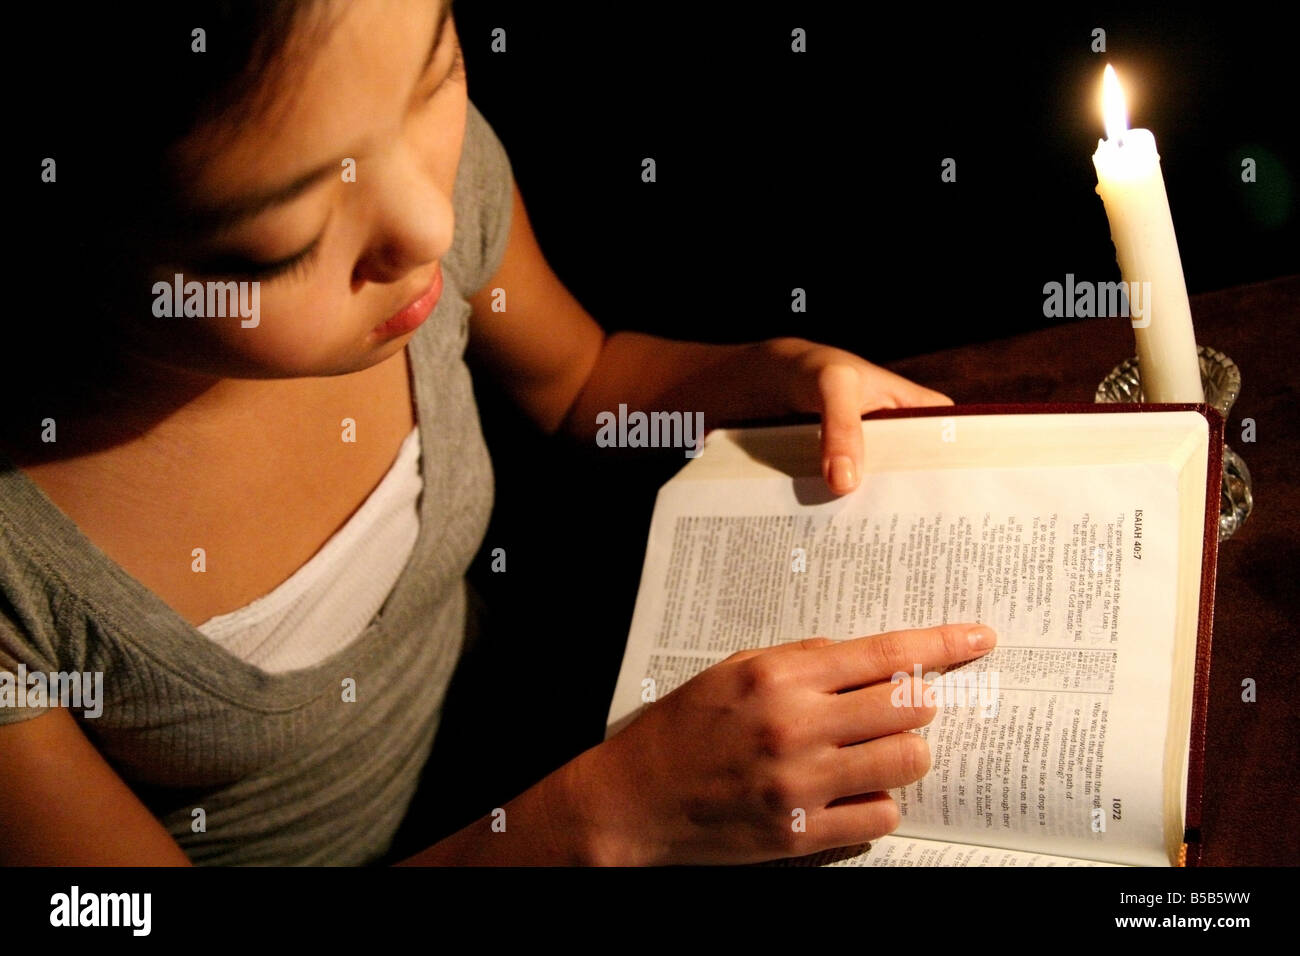 Girl reading the Bible by candlelight - Stock Image